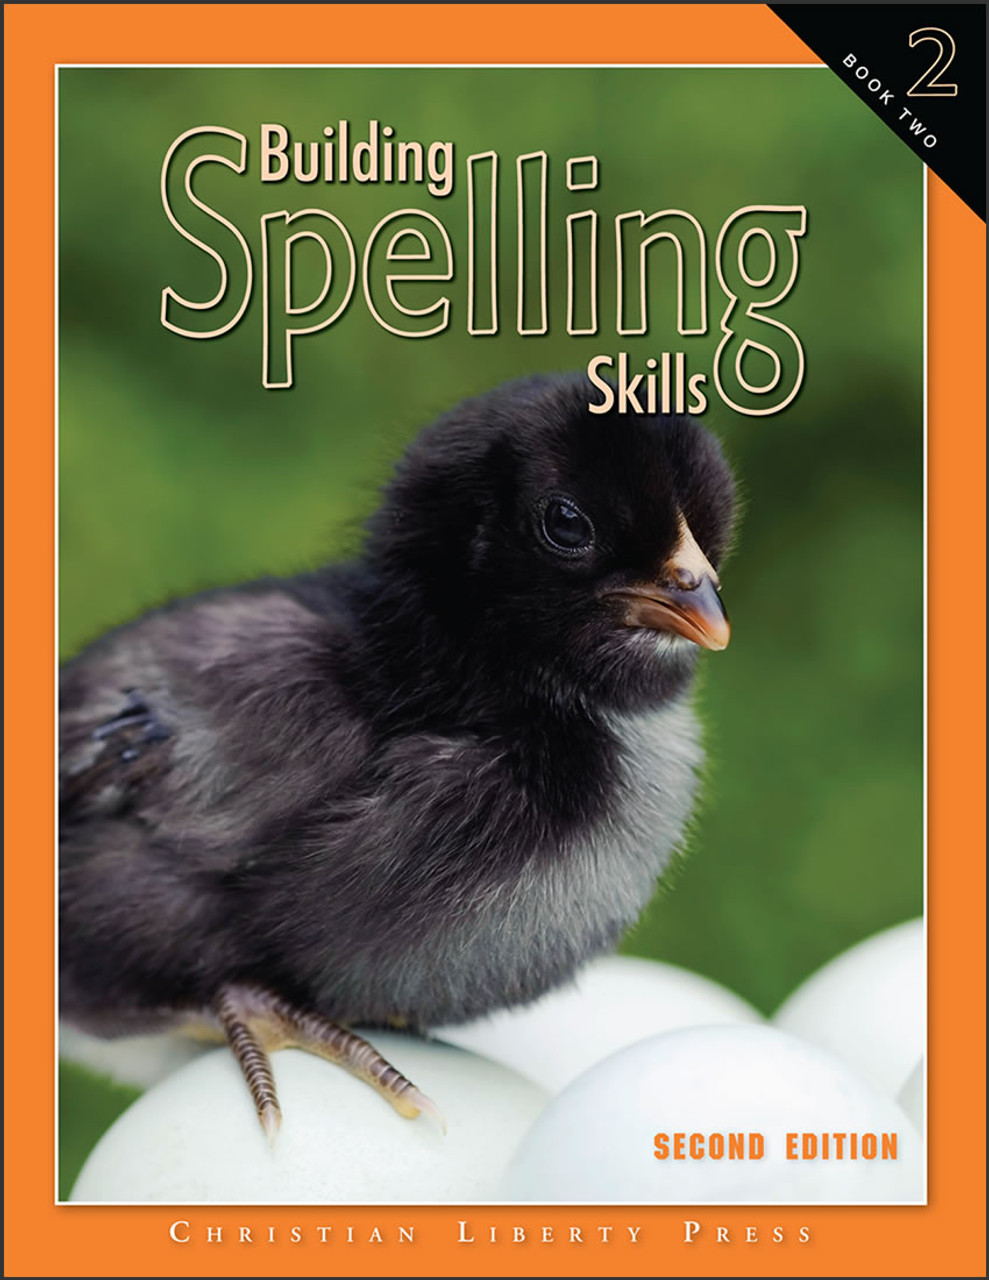 Building Spelling Skills Book 2, 2nd edition